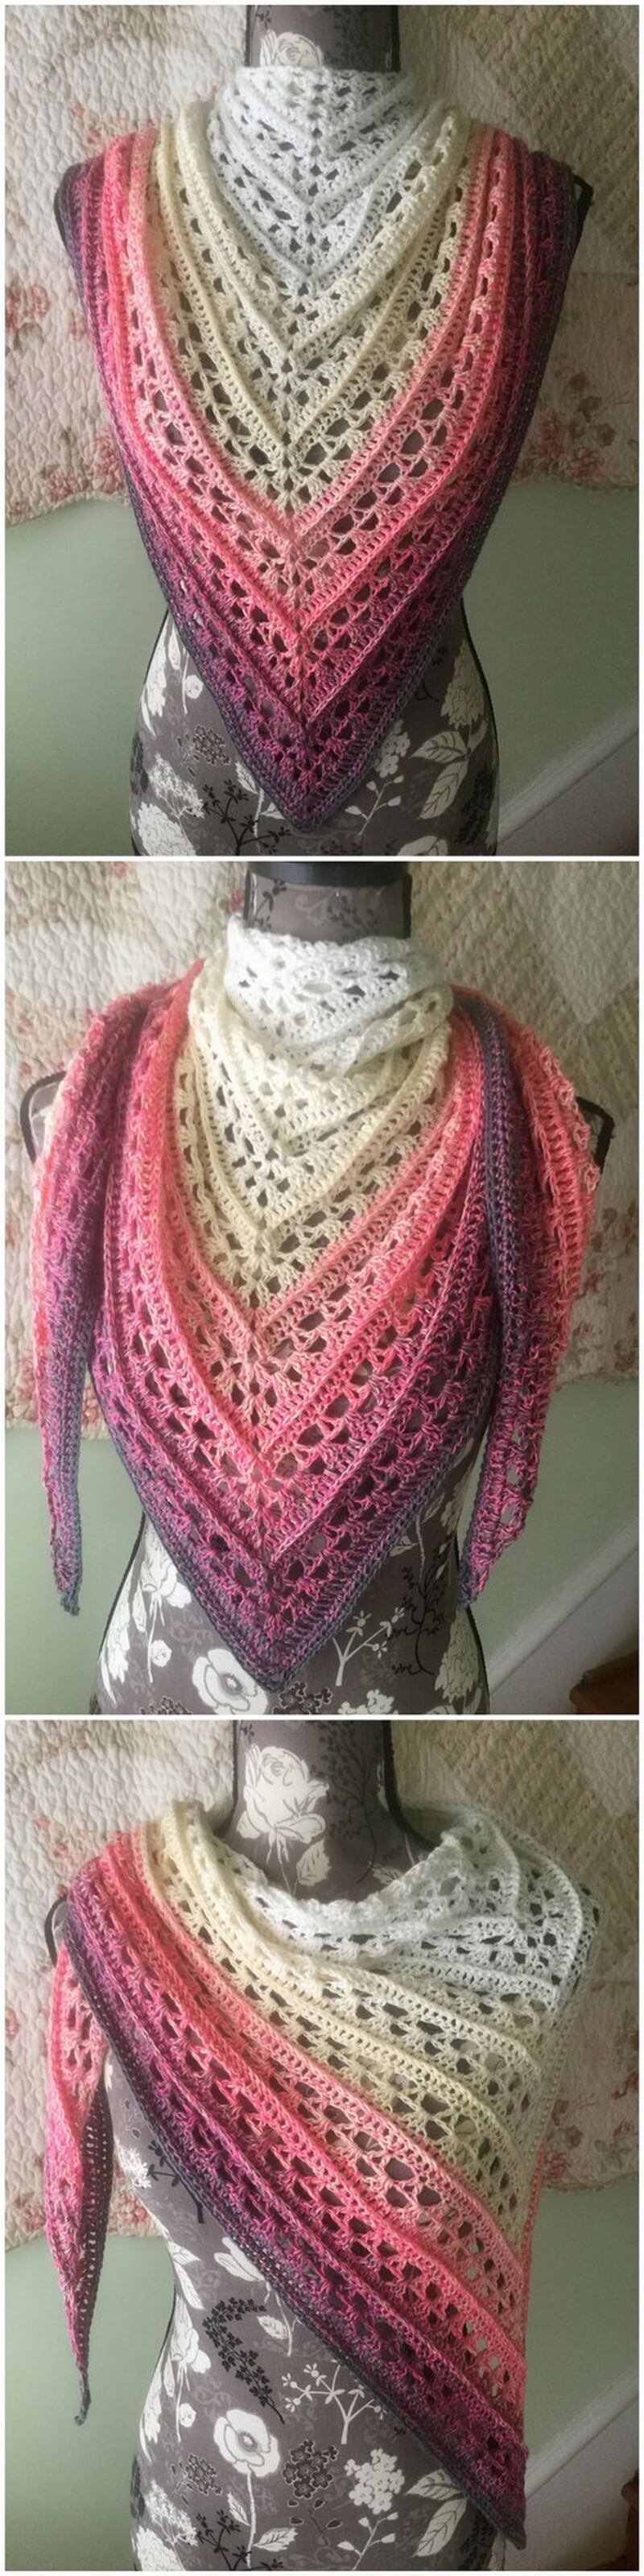 Crochet Shawl Pattern (66)